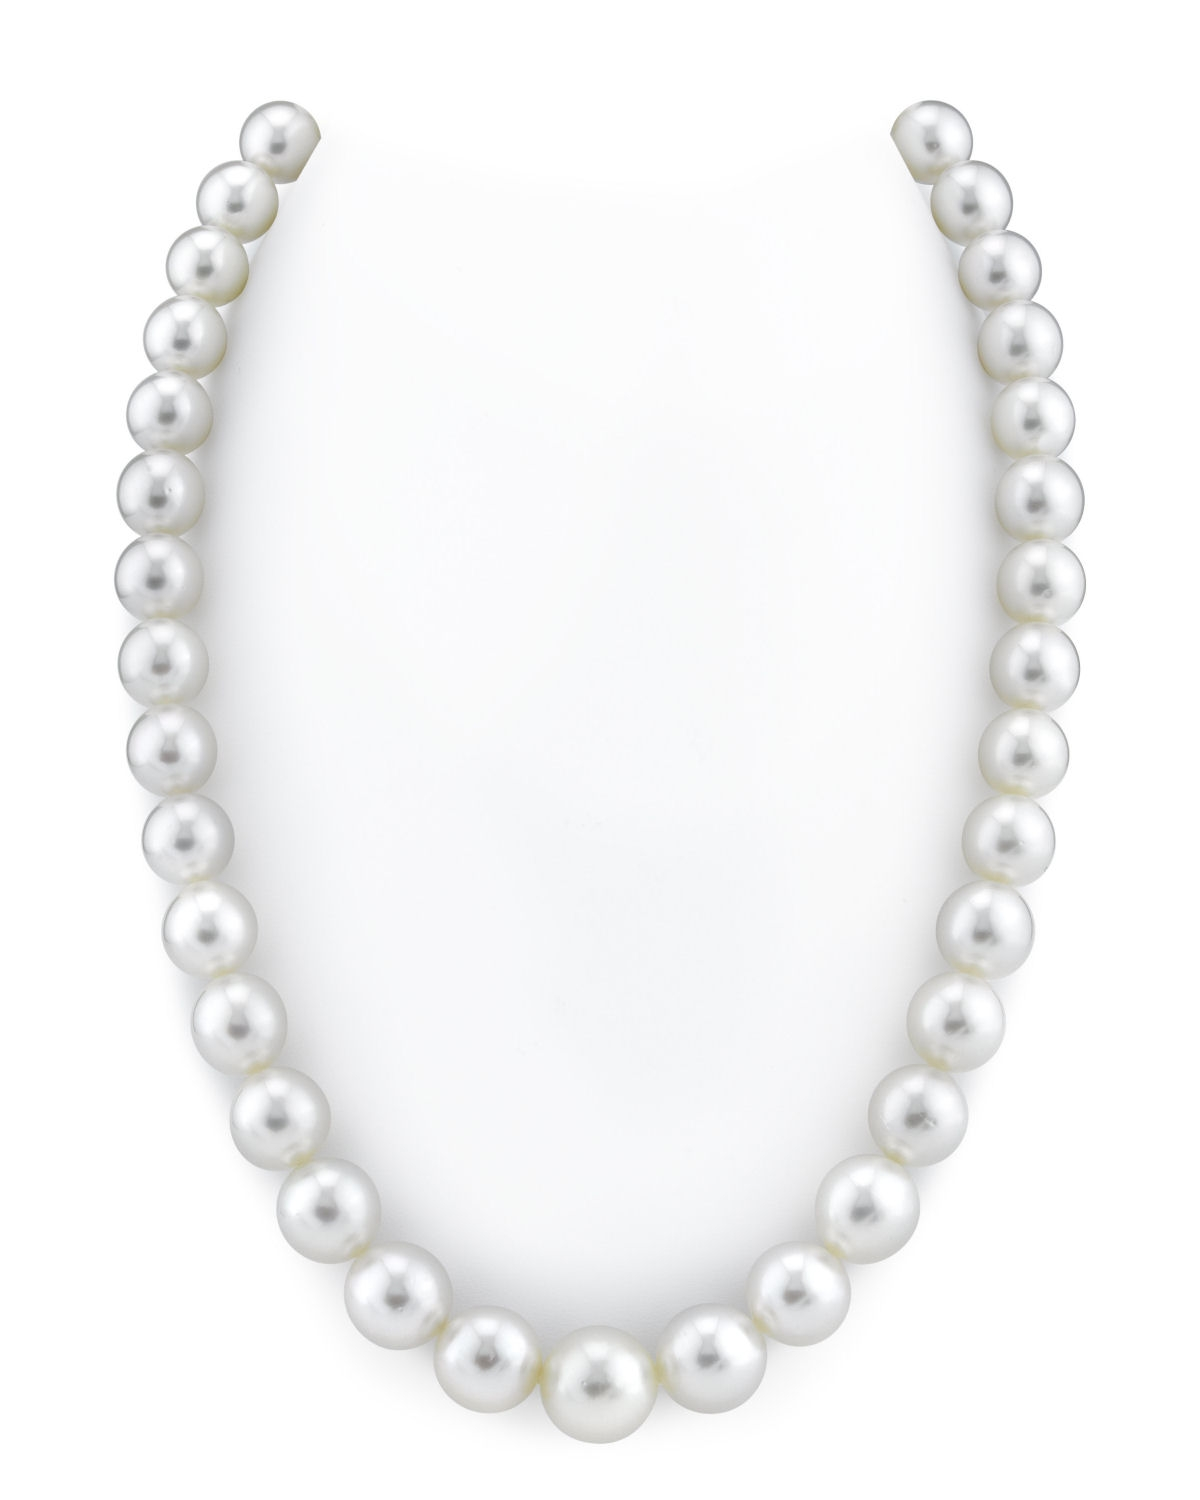 10-12mm White South Sea Pearl Necklace - AAAA Quality